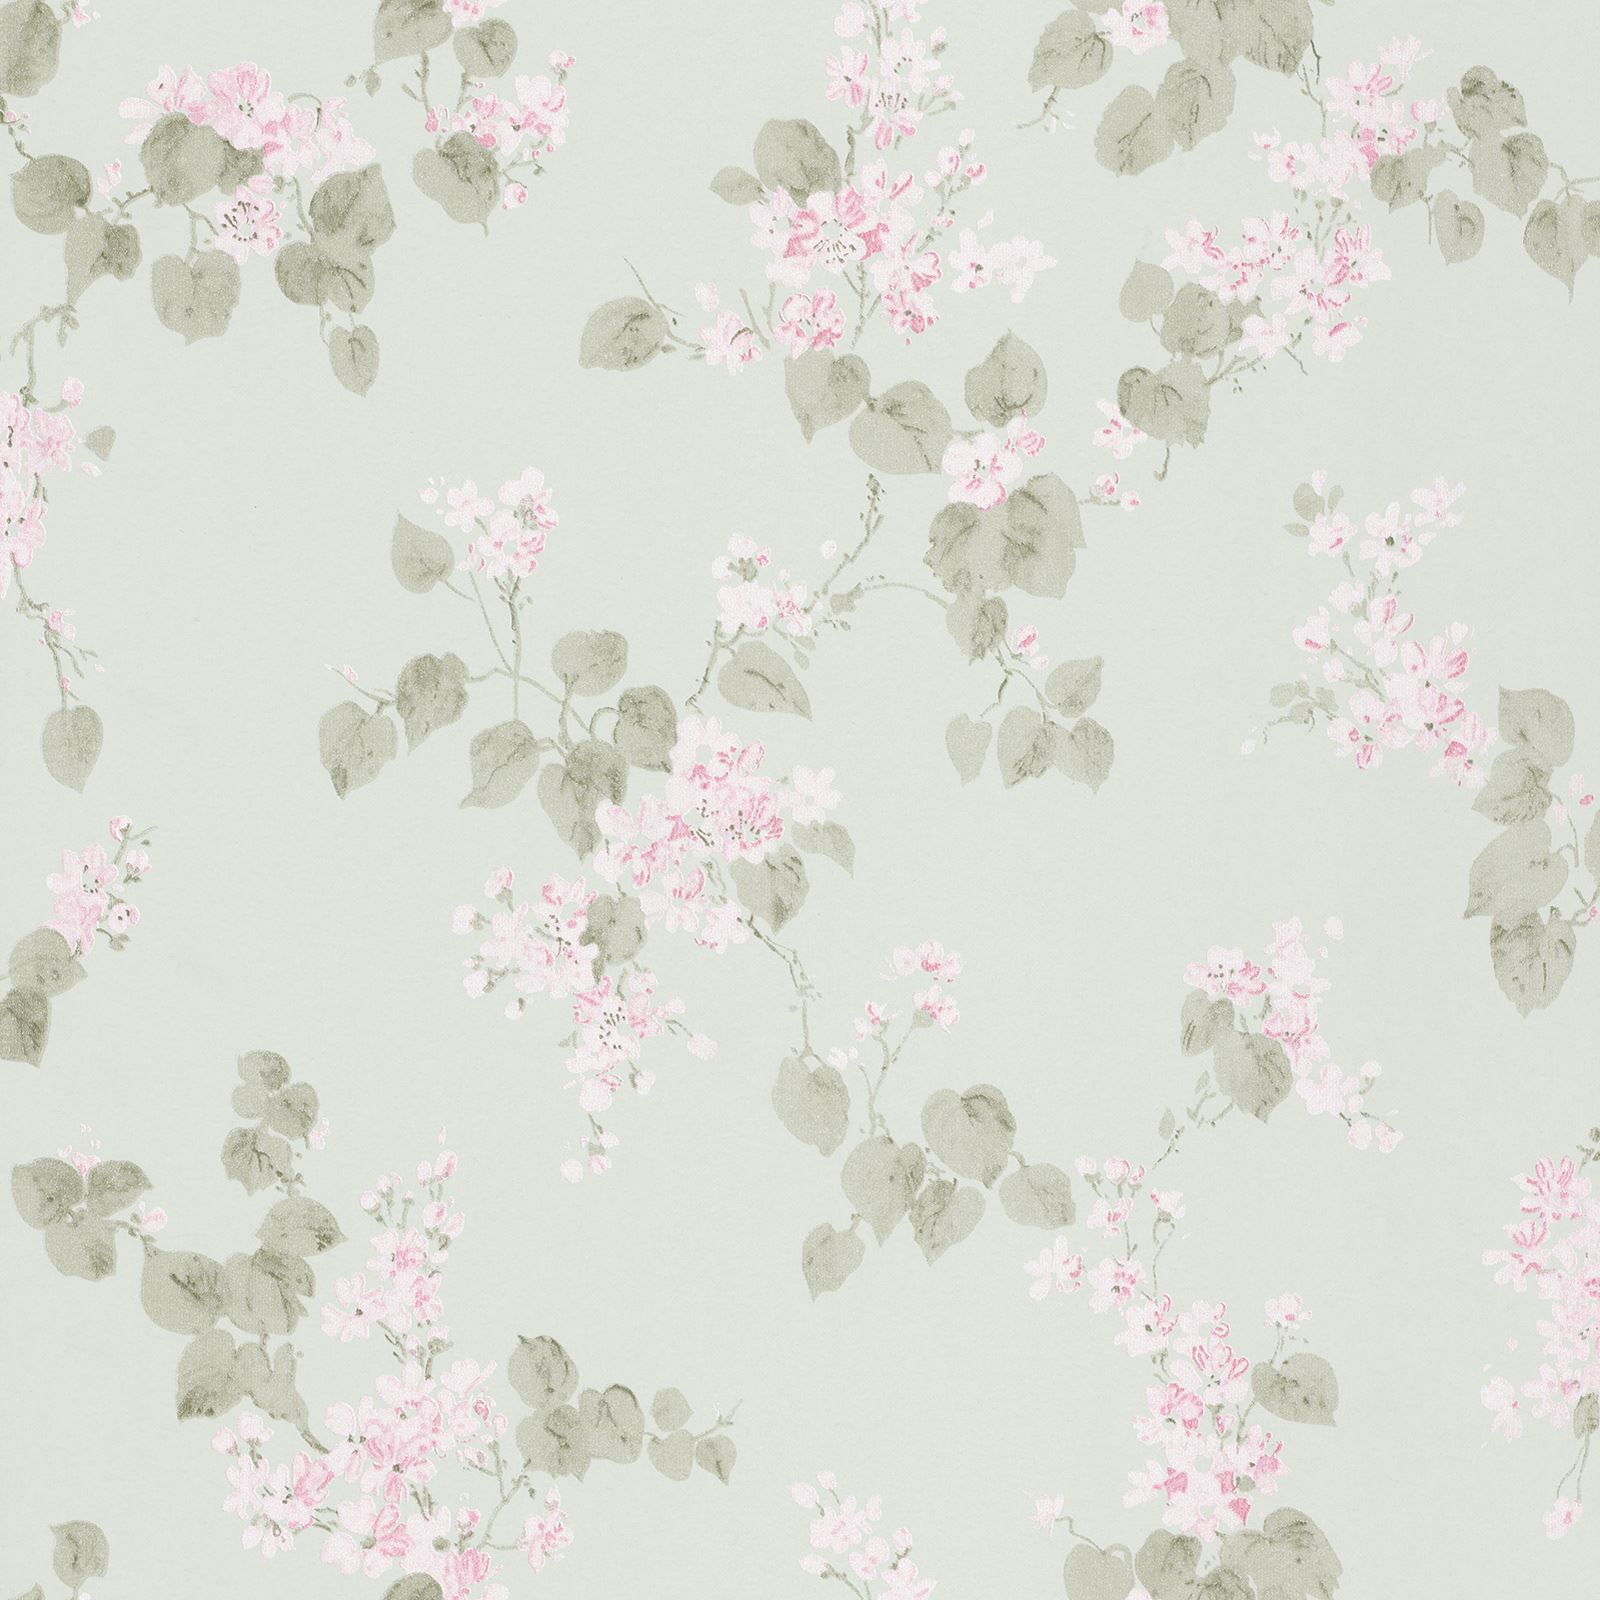 RASCH EMILIA BLOSSOM FLORAL WALLPAPER PALE GOLD MINT SHABBY CHIC WALL DECOR NEW